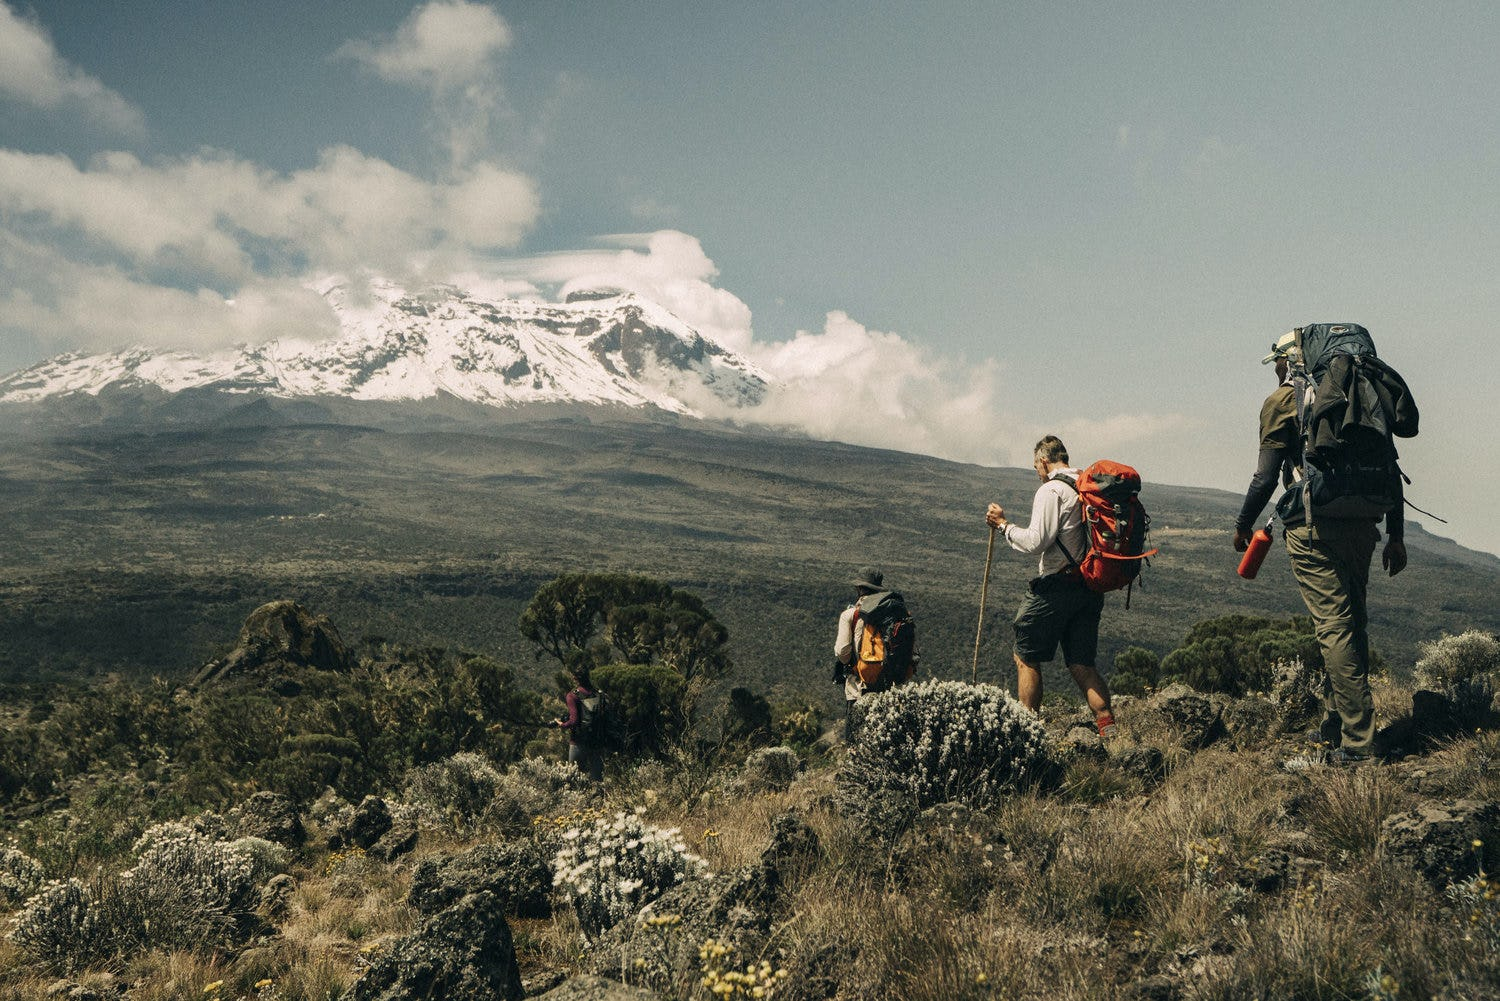 Seeing Is Believing The Evaporation Of Mount Kilimanjaro